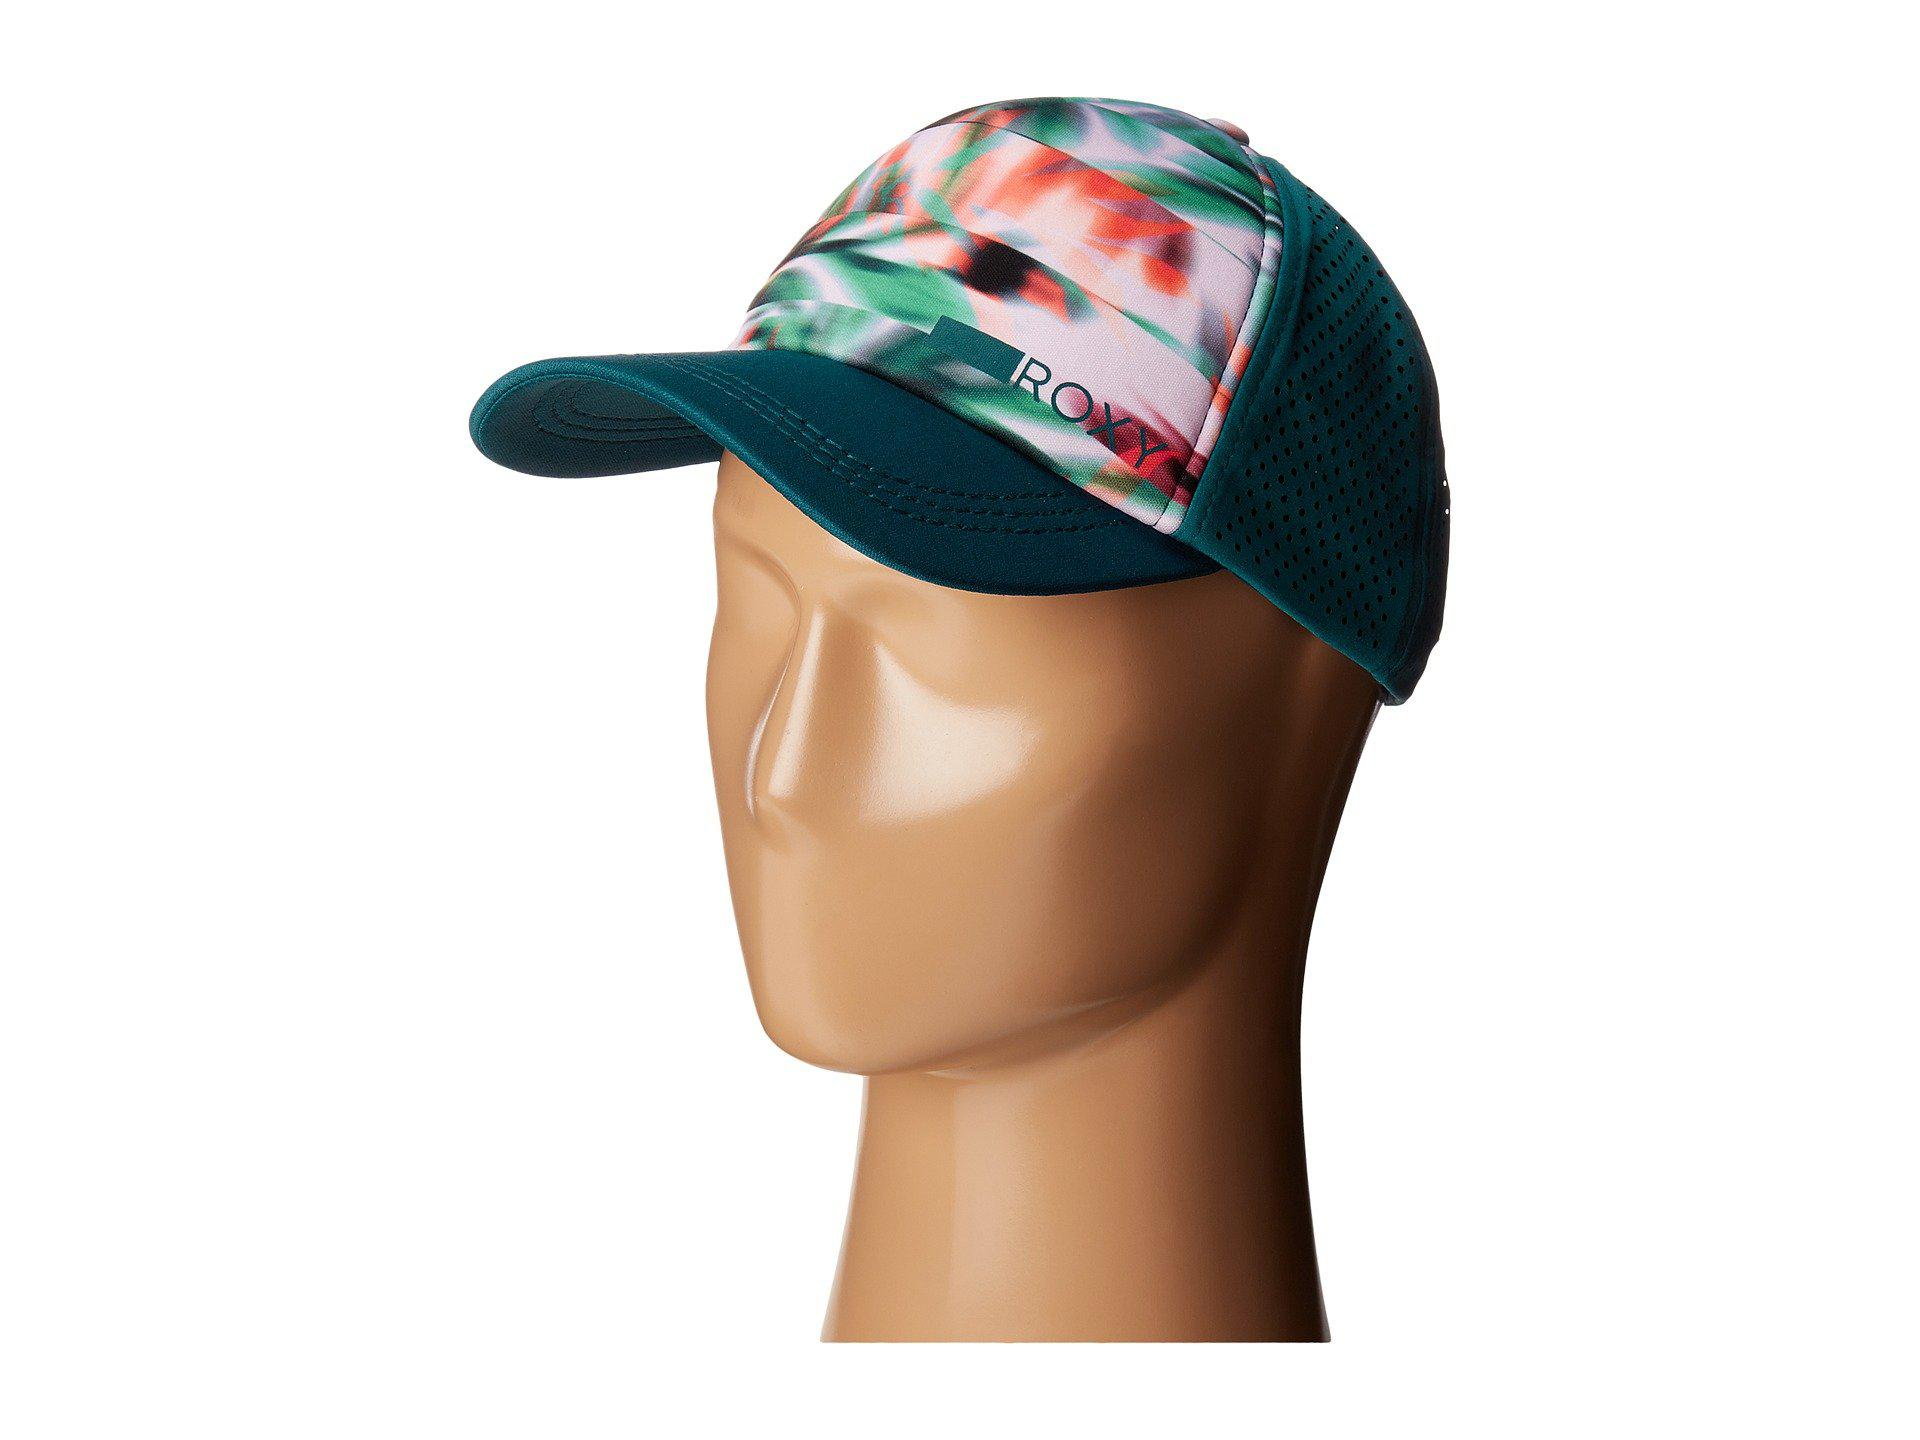 87c405f7c14d3 Lyst - Roxy Waves Machines Trucker Hat in Green for Men